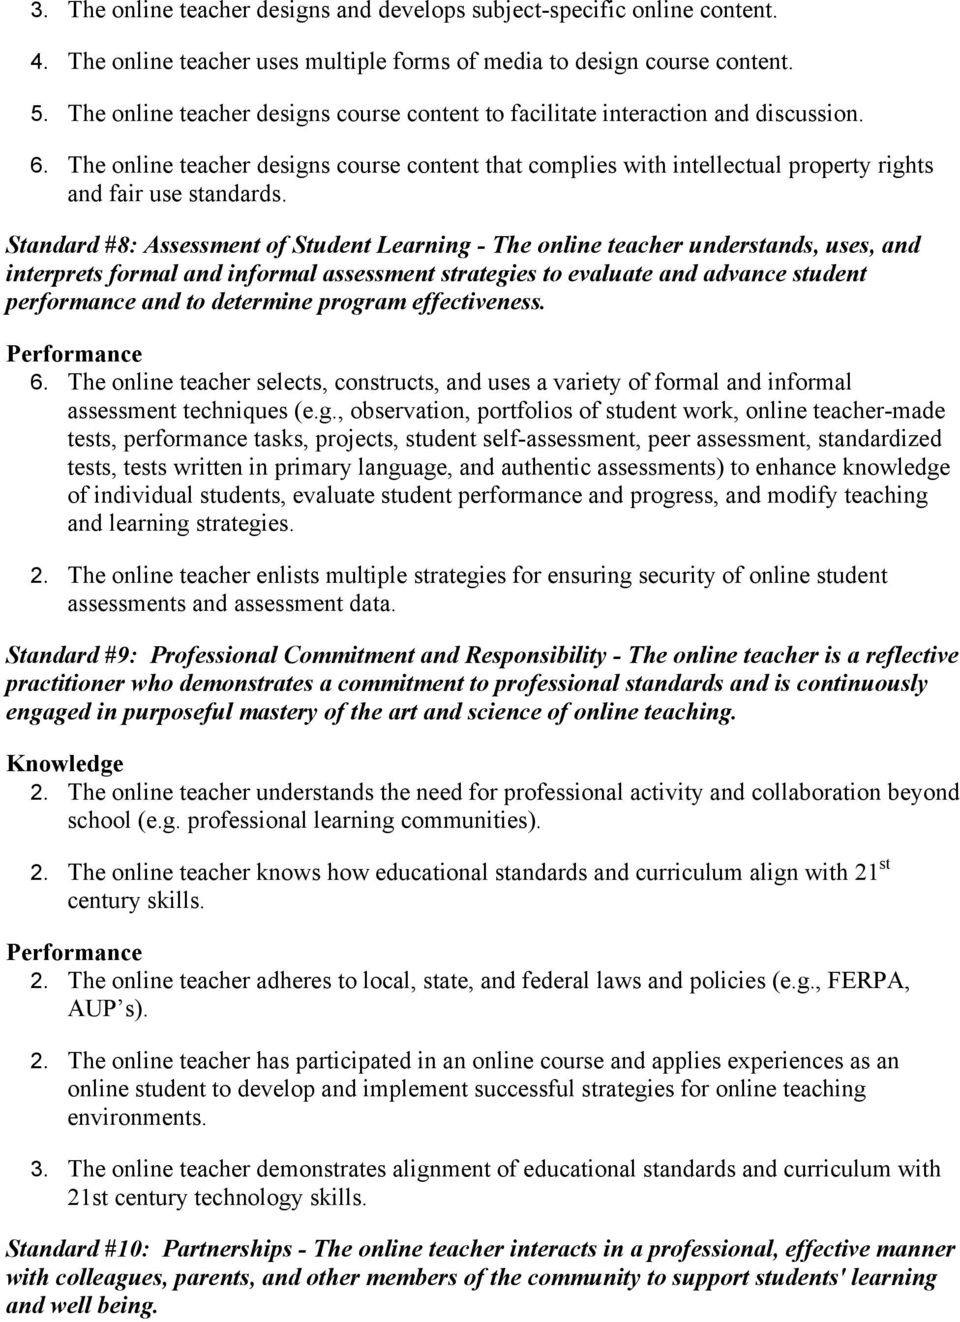 Standard #8: Assessment of Student Learning - The online teacher understands, uses, and interprets formal and informal assessment strategies to evaluate and advance student performance and to